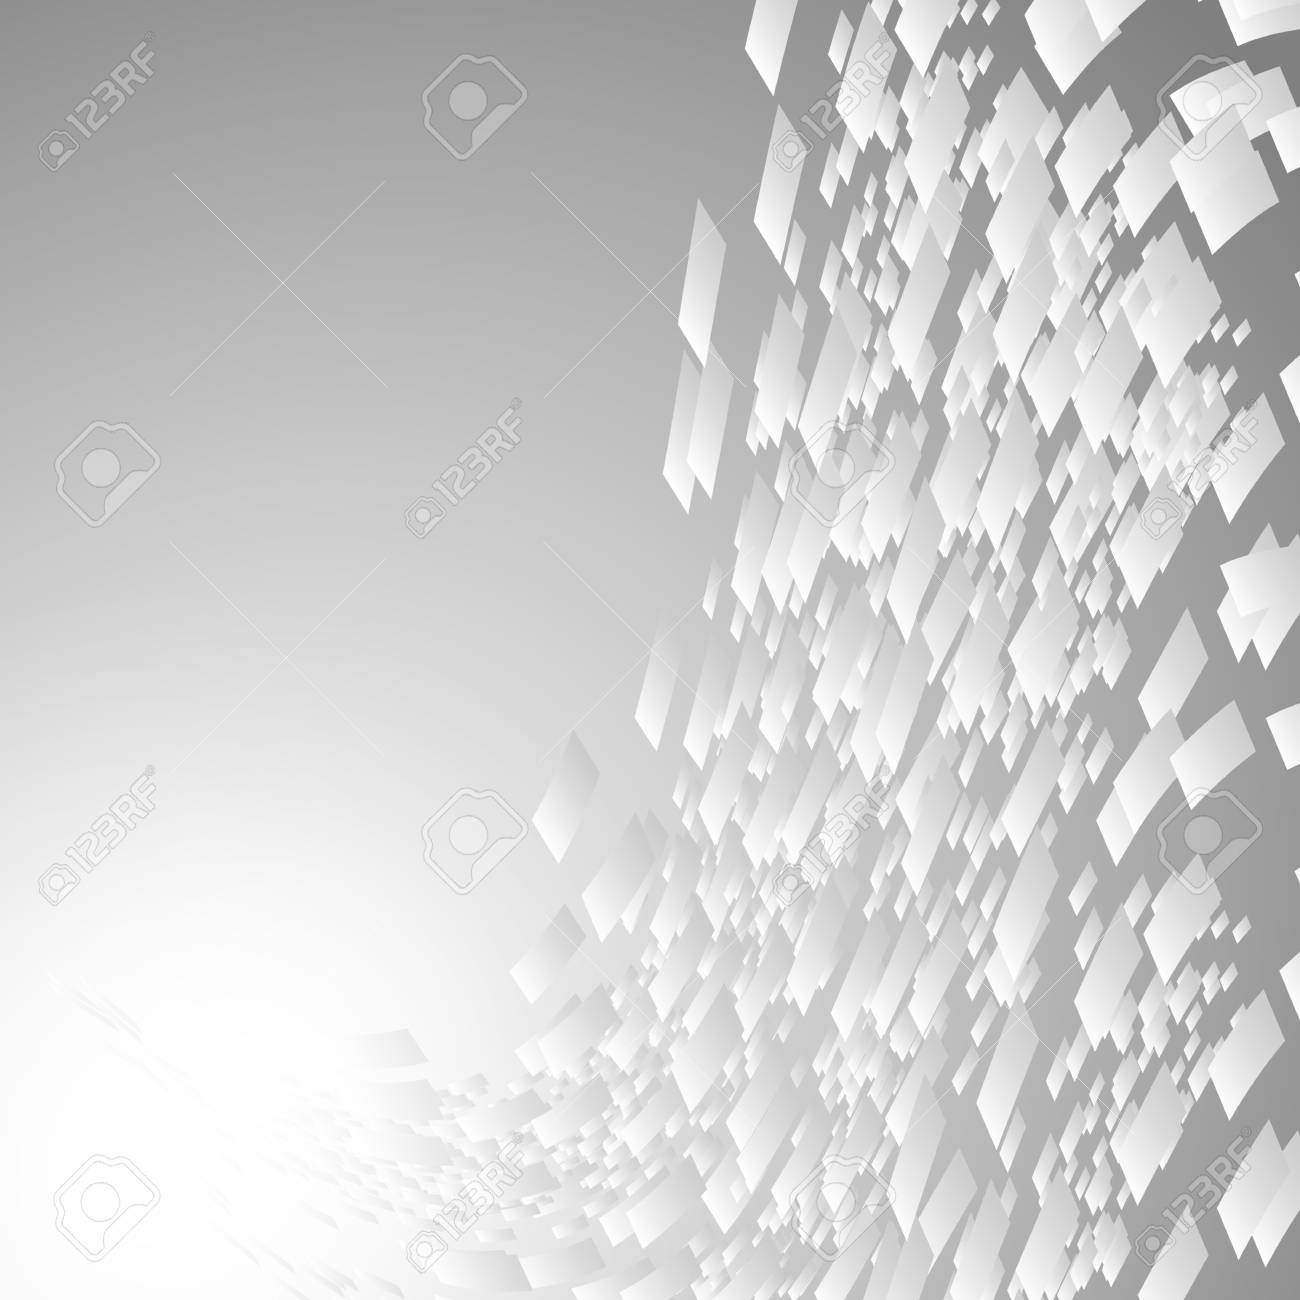 Abstract glass block lights on grey background. Stock Vector - 17690483